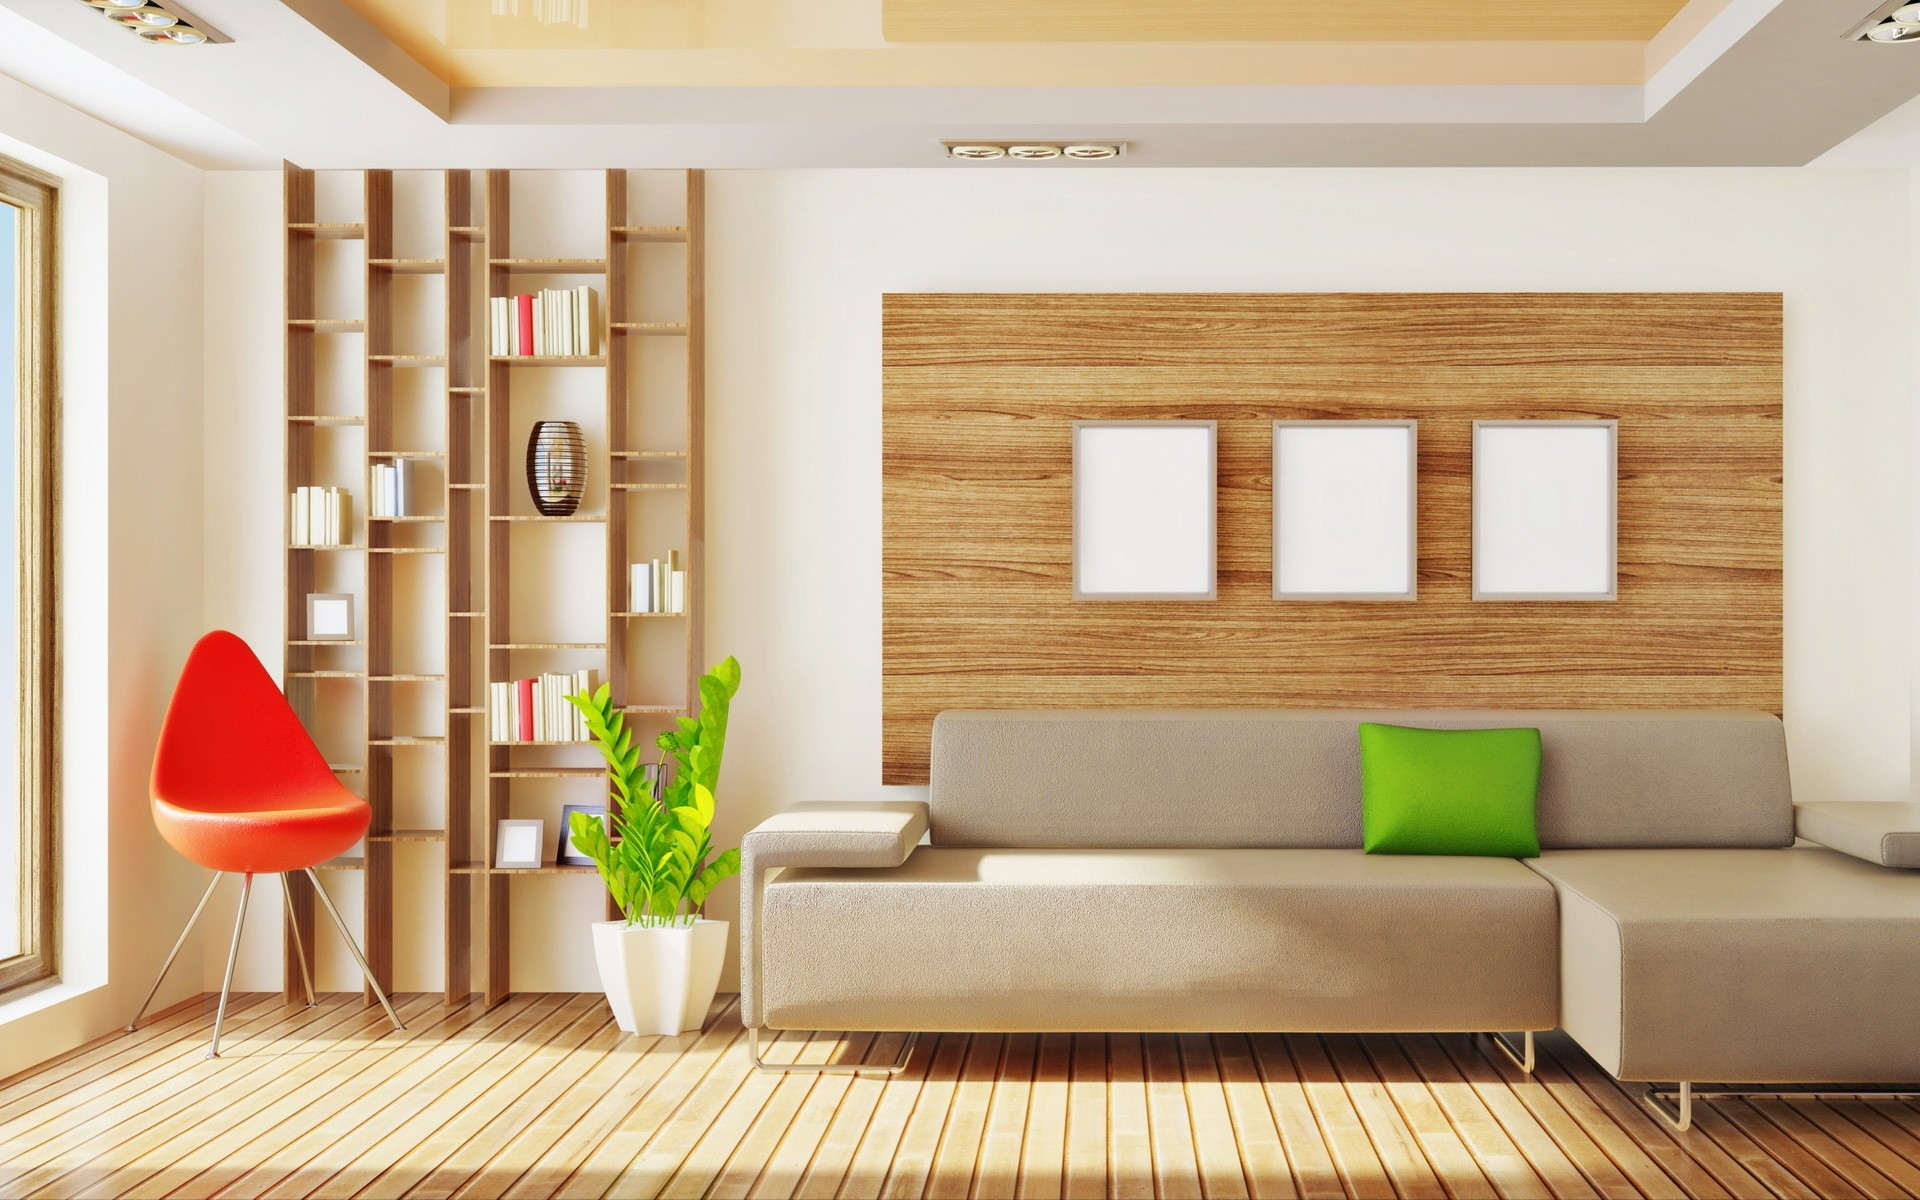 47434776 Room Wallpaper - Wood Decor Living Room , HD Wallpaper & Backgrounds